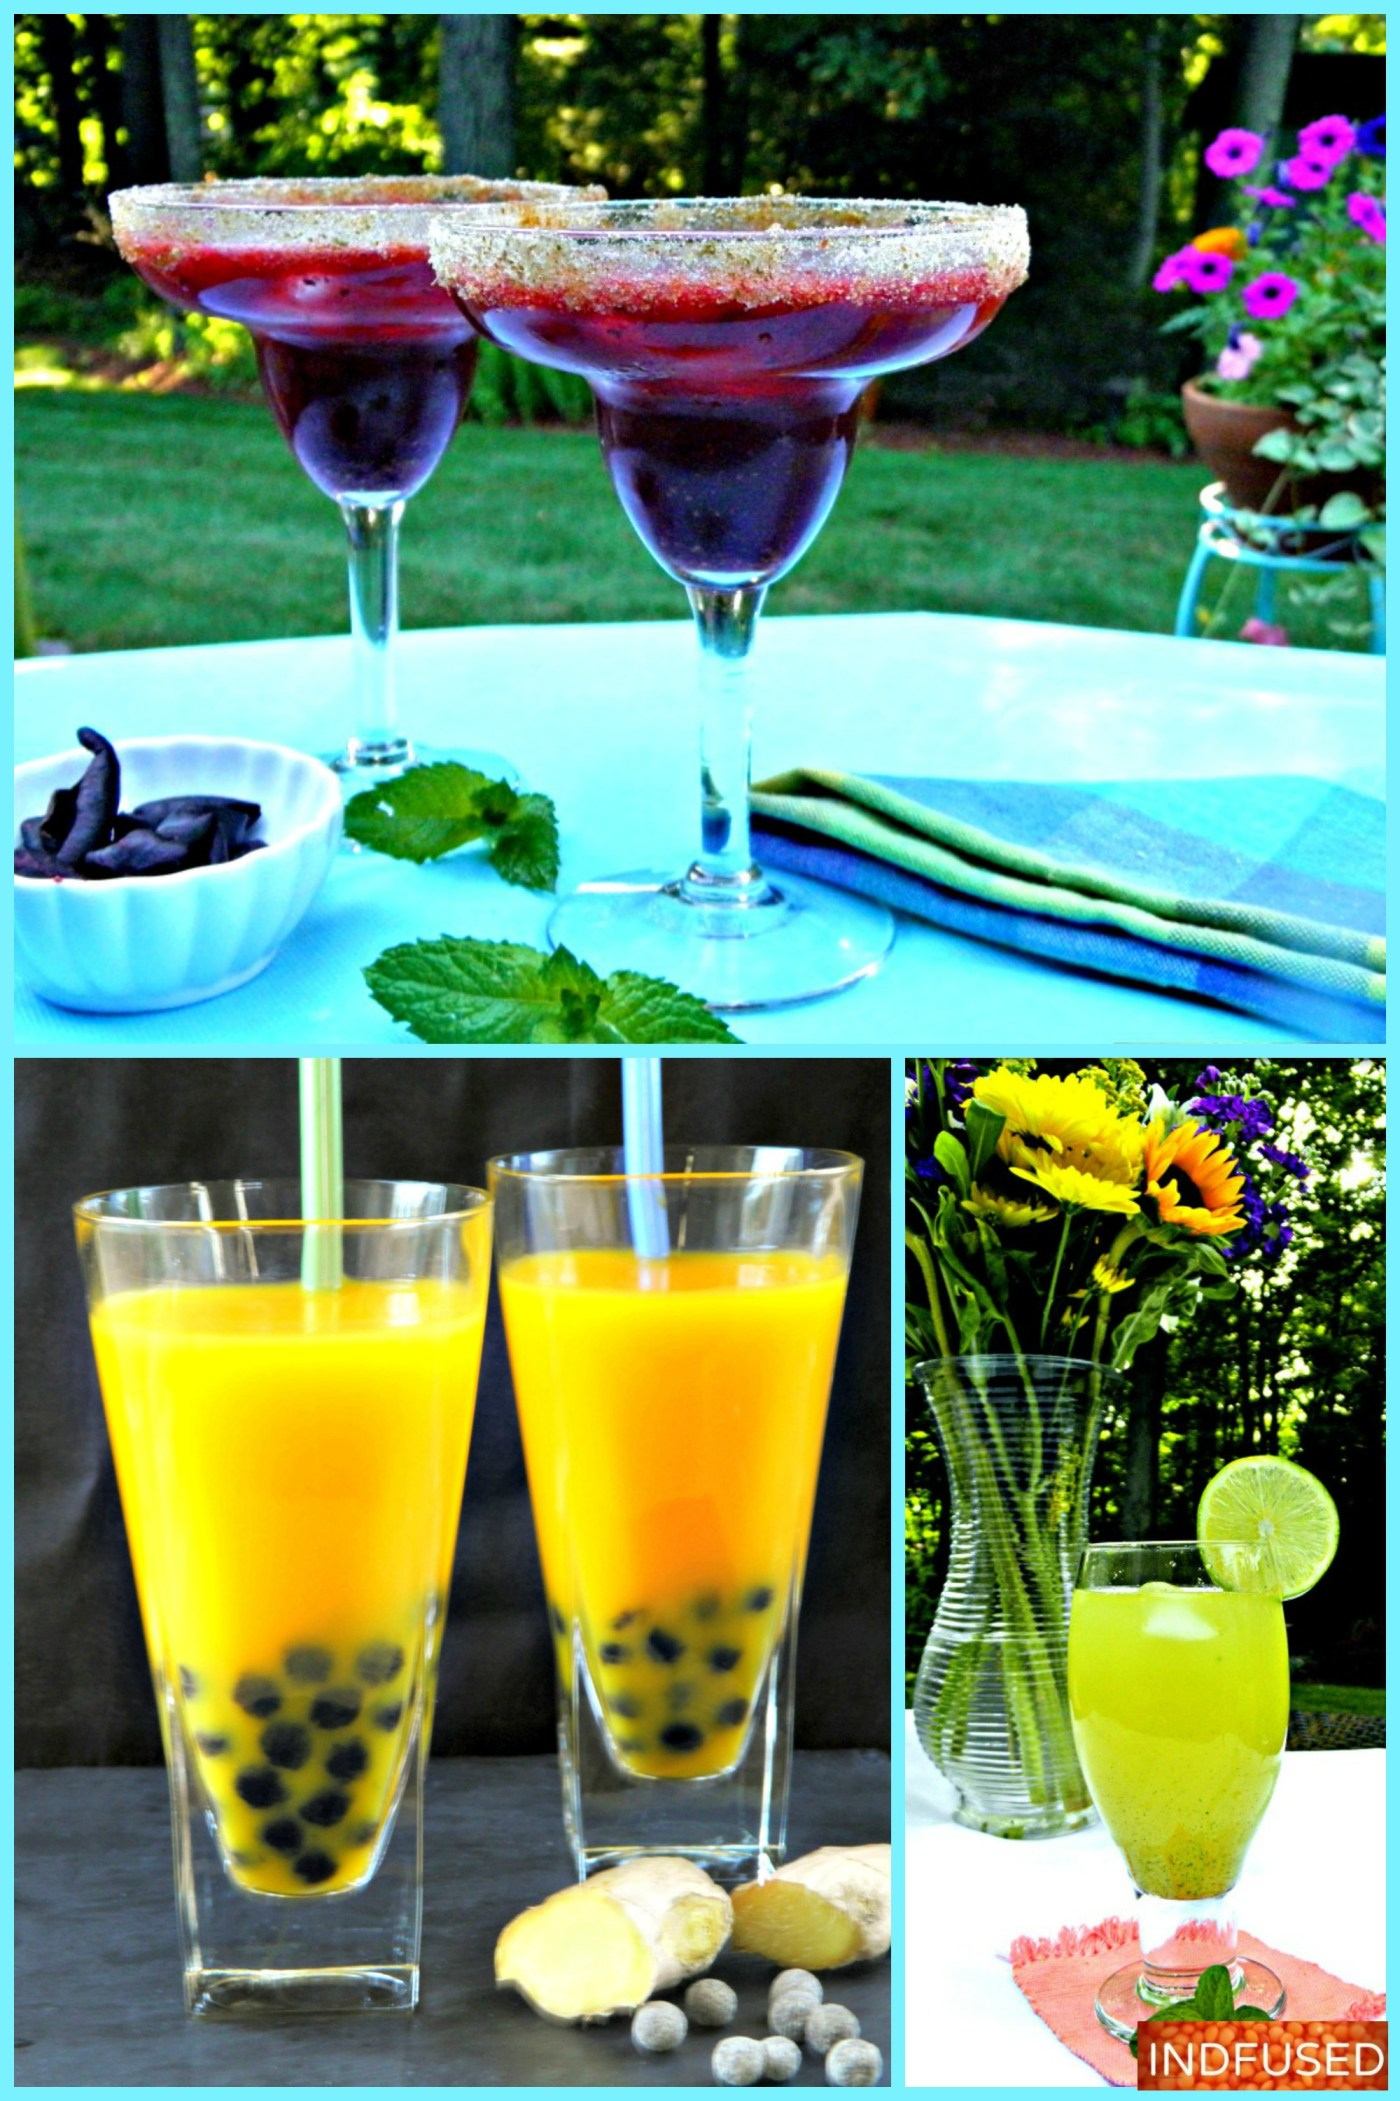 Top 3 mocktails- recipes you will need for memorable summer parties. Mocktails with health benefits!